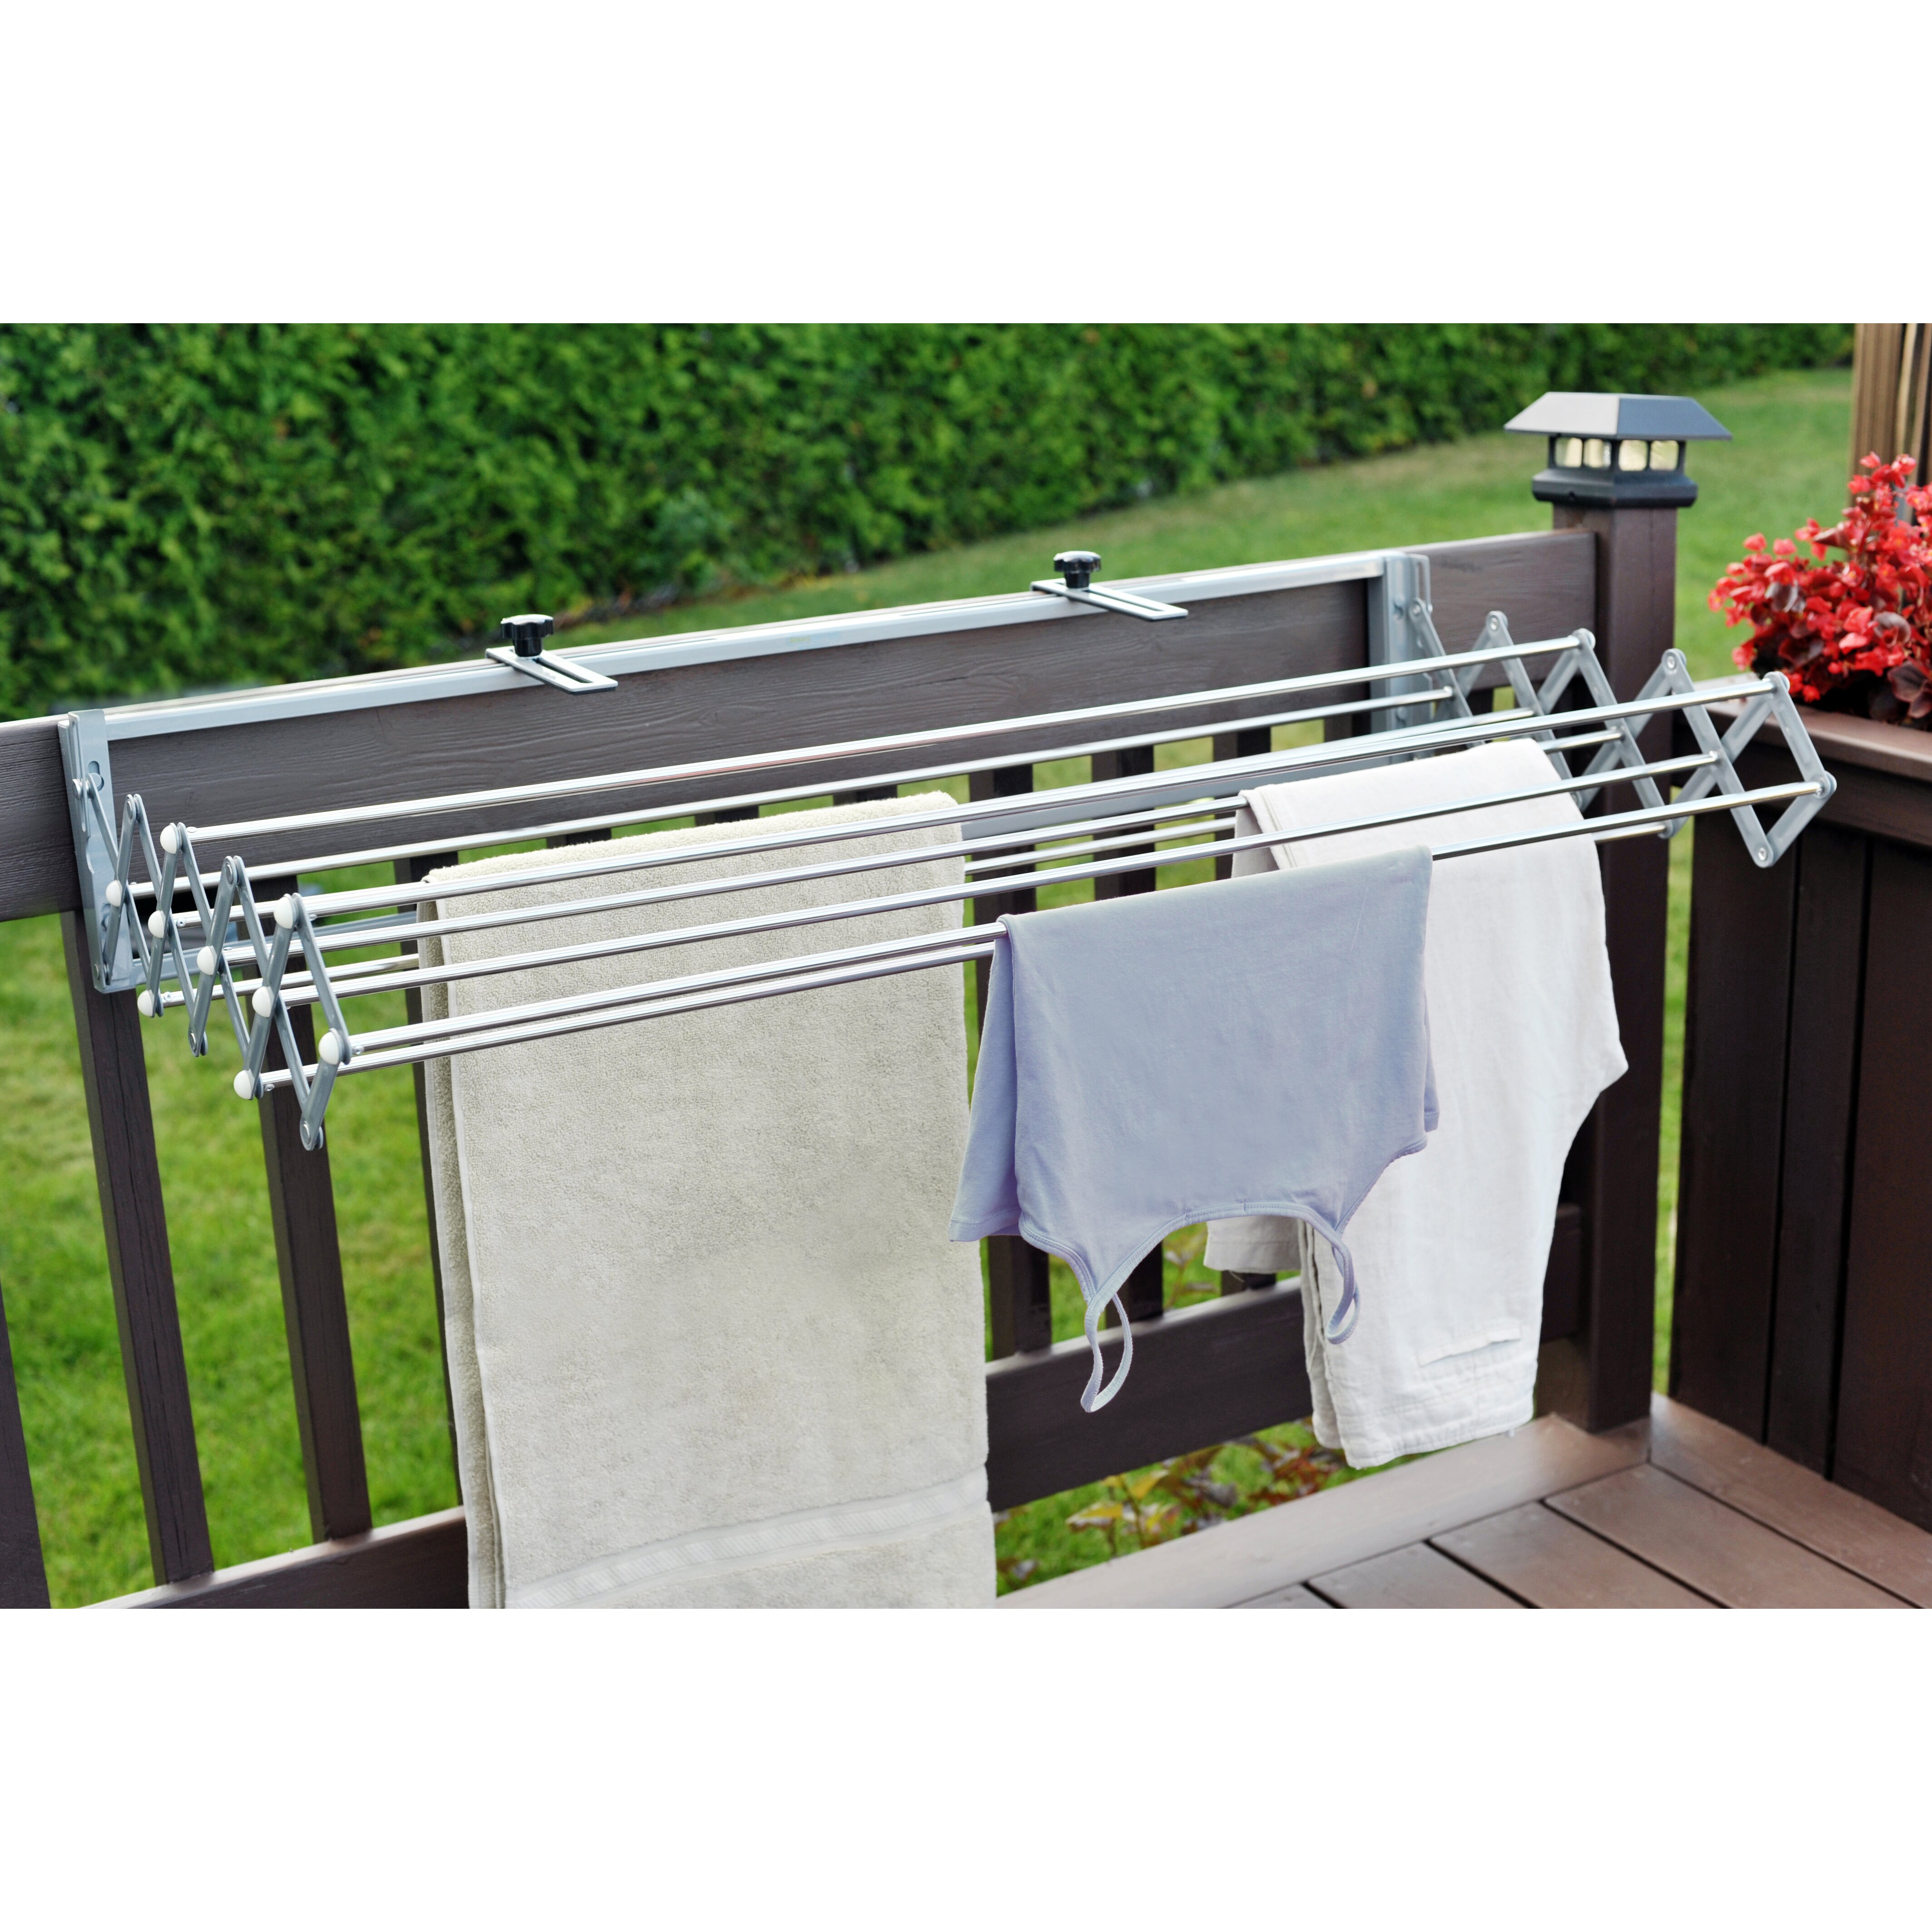 Clothes Dryer Rack ~ Xcentrik smart dryer telescopic clothes drying rack